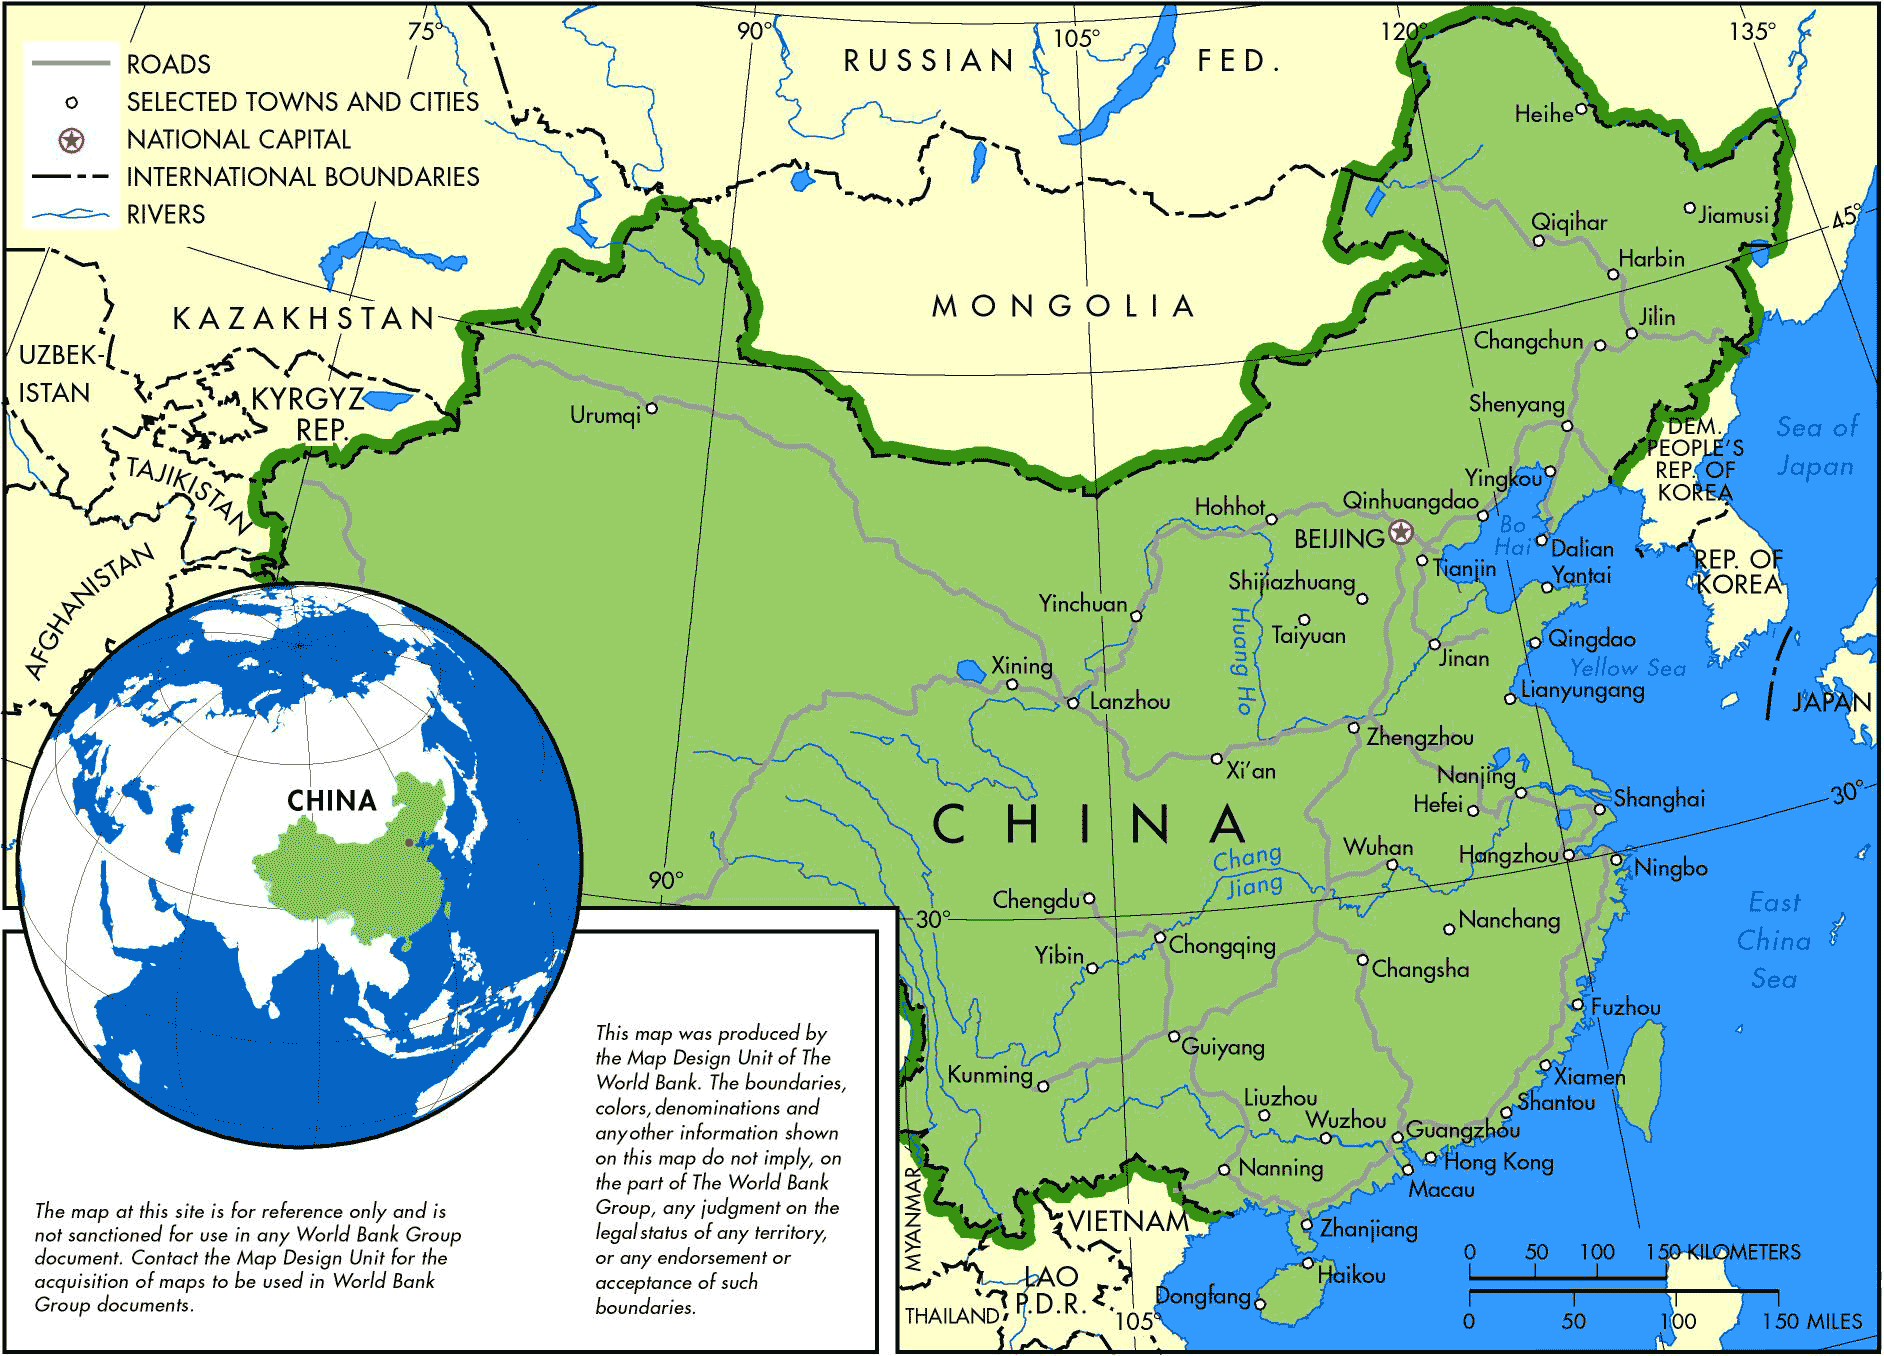 china map major cities China Major Cities Mapsof Net china map major cities